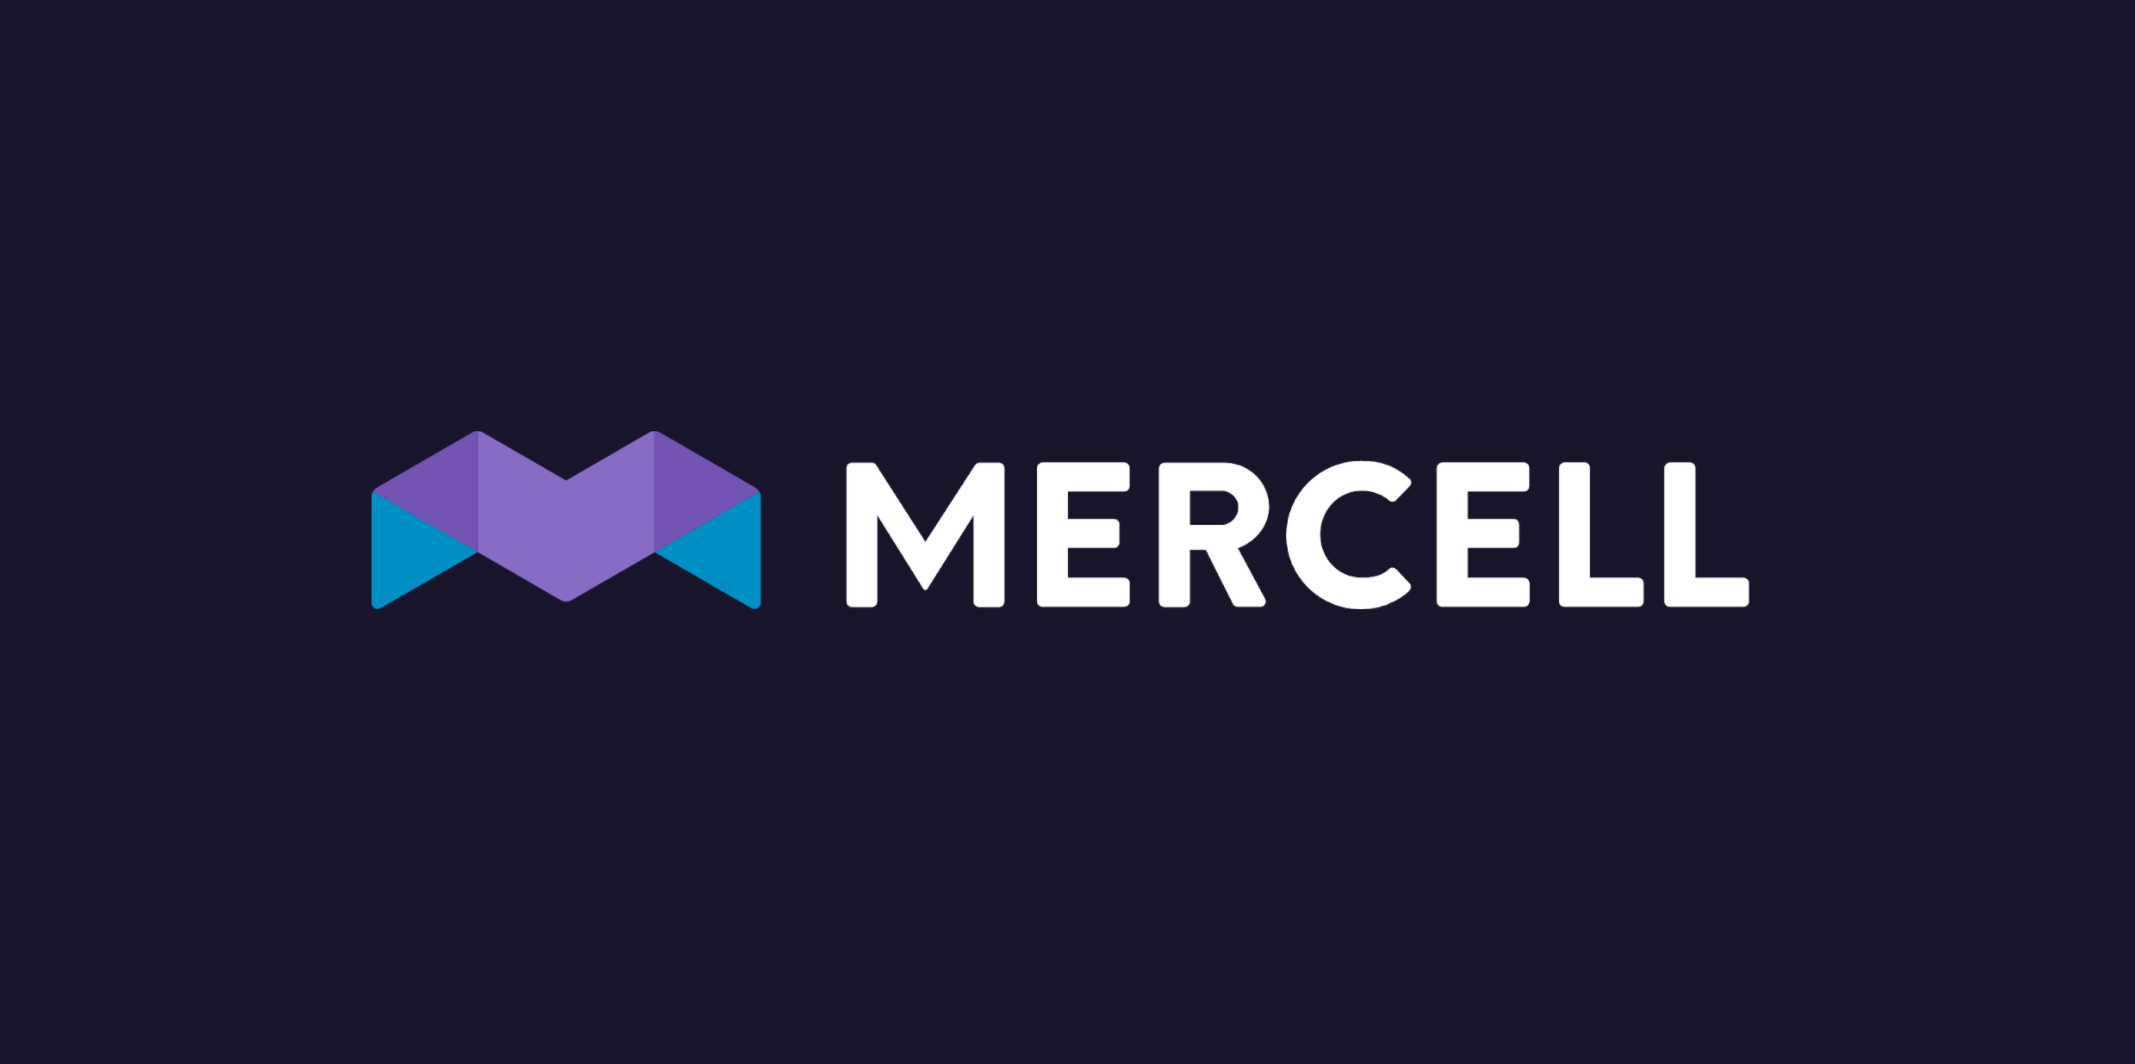 mercell-uk-about-logo